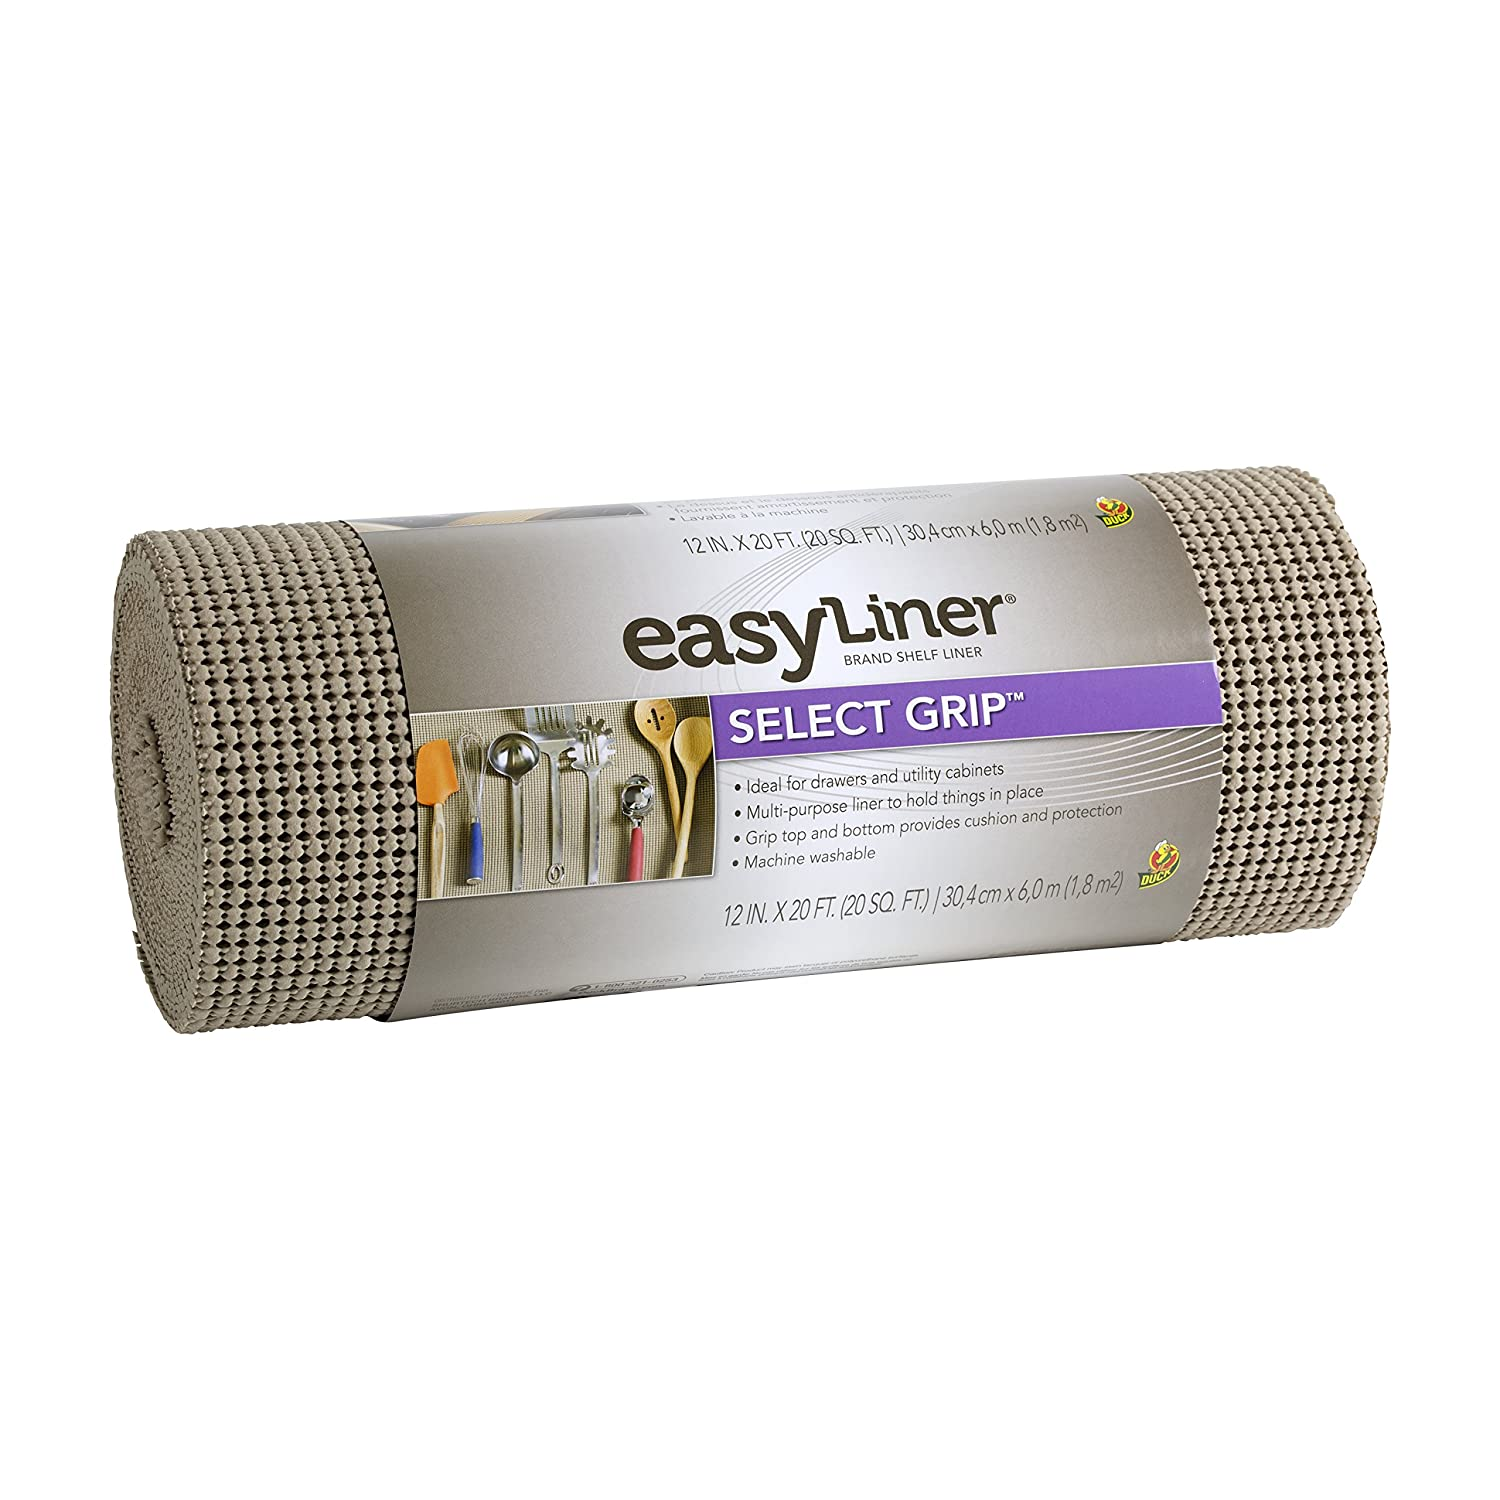 Amazon.com: Duck Brand Select Grip Easy Liner Non Adhesive Shelf Liner, 12  In. X 20 Ft., Taupe (1100731): Home U0026 Kitchen